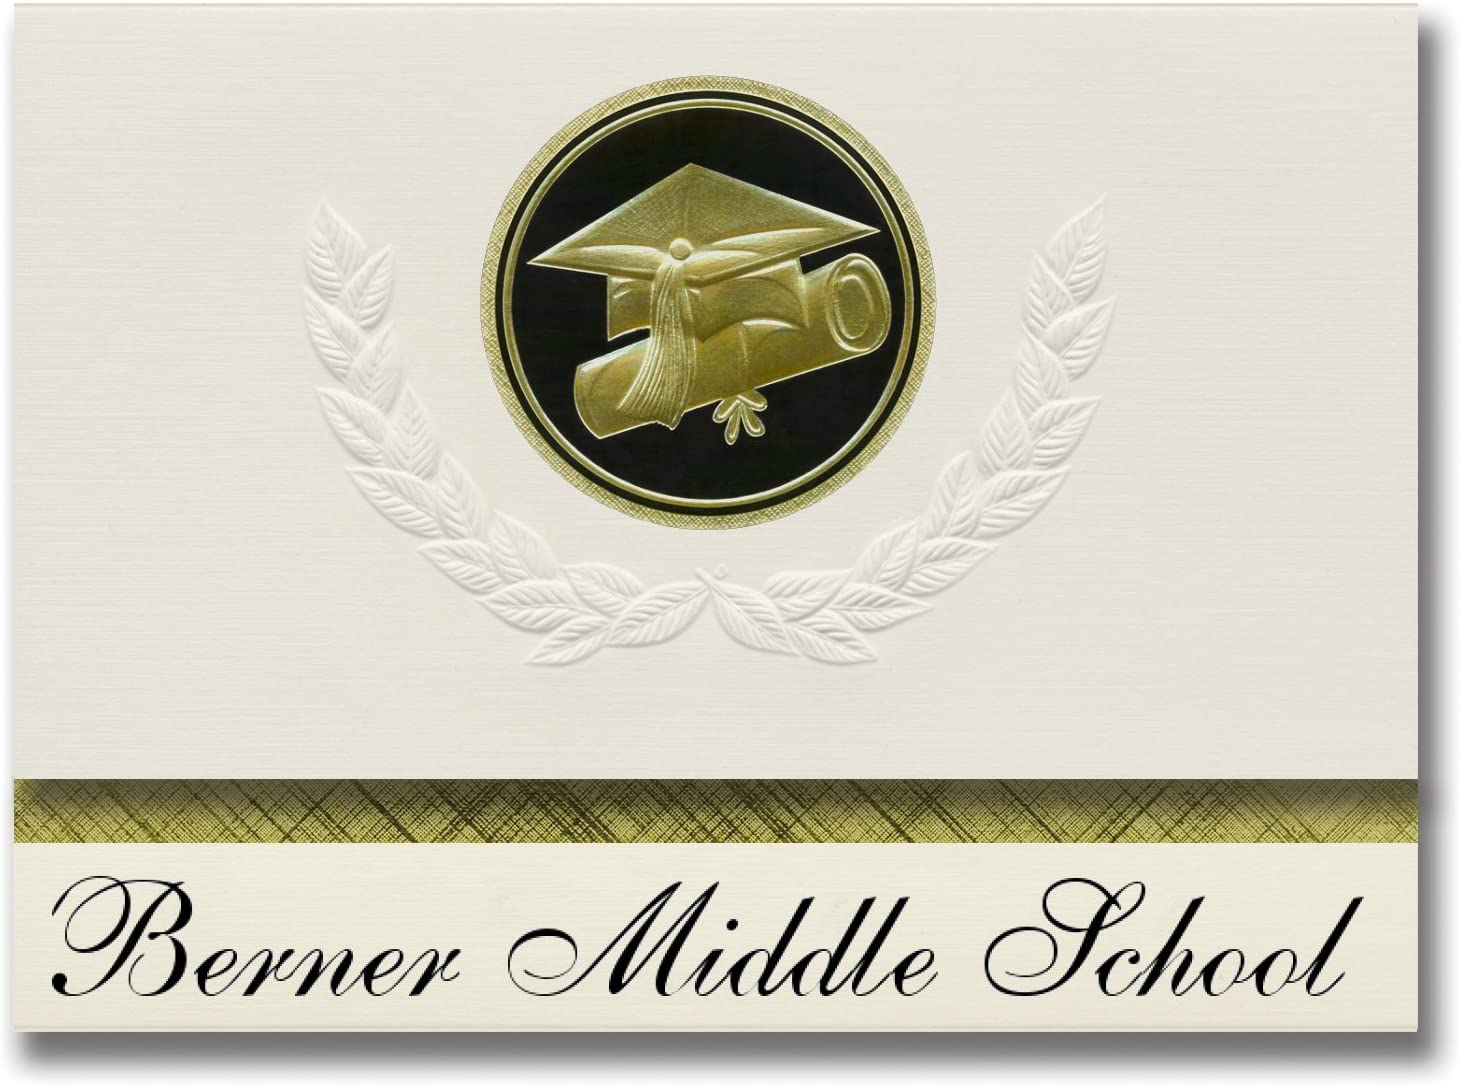 Signature Announcements Berner Middle School (Massapequa, NY) Graduation Announcements, Presidential style, Basic package of 25 Cap & Diploma Seal. Black & Gold.